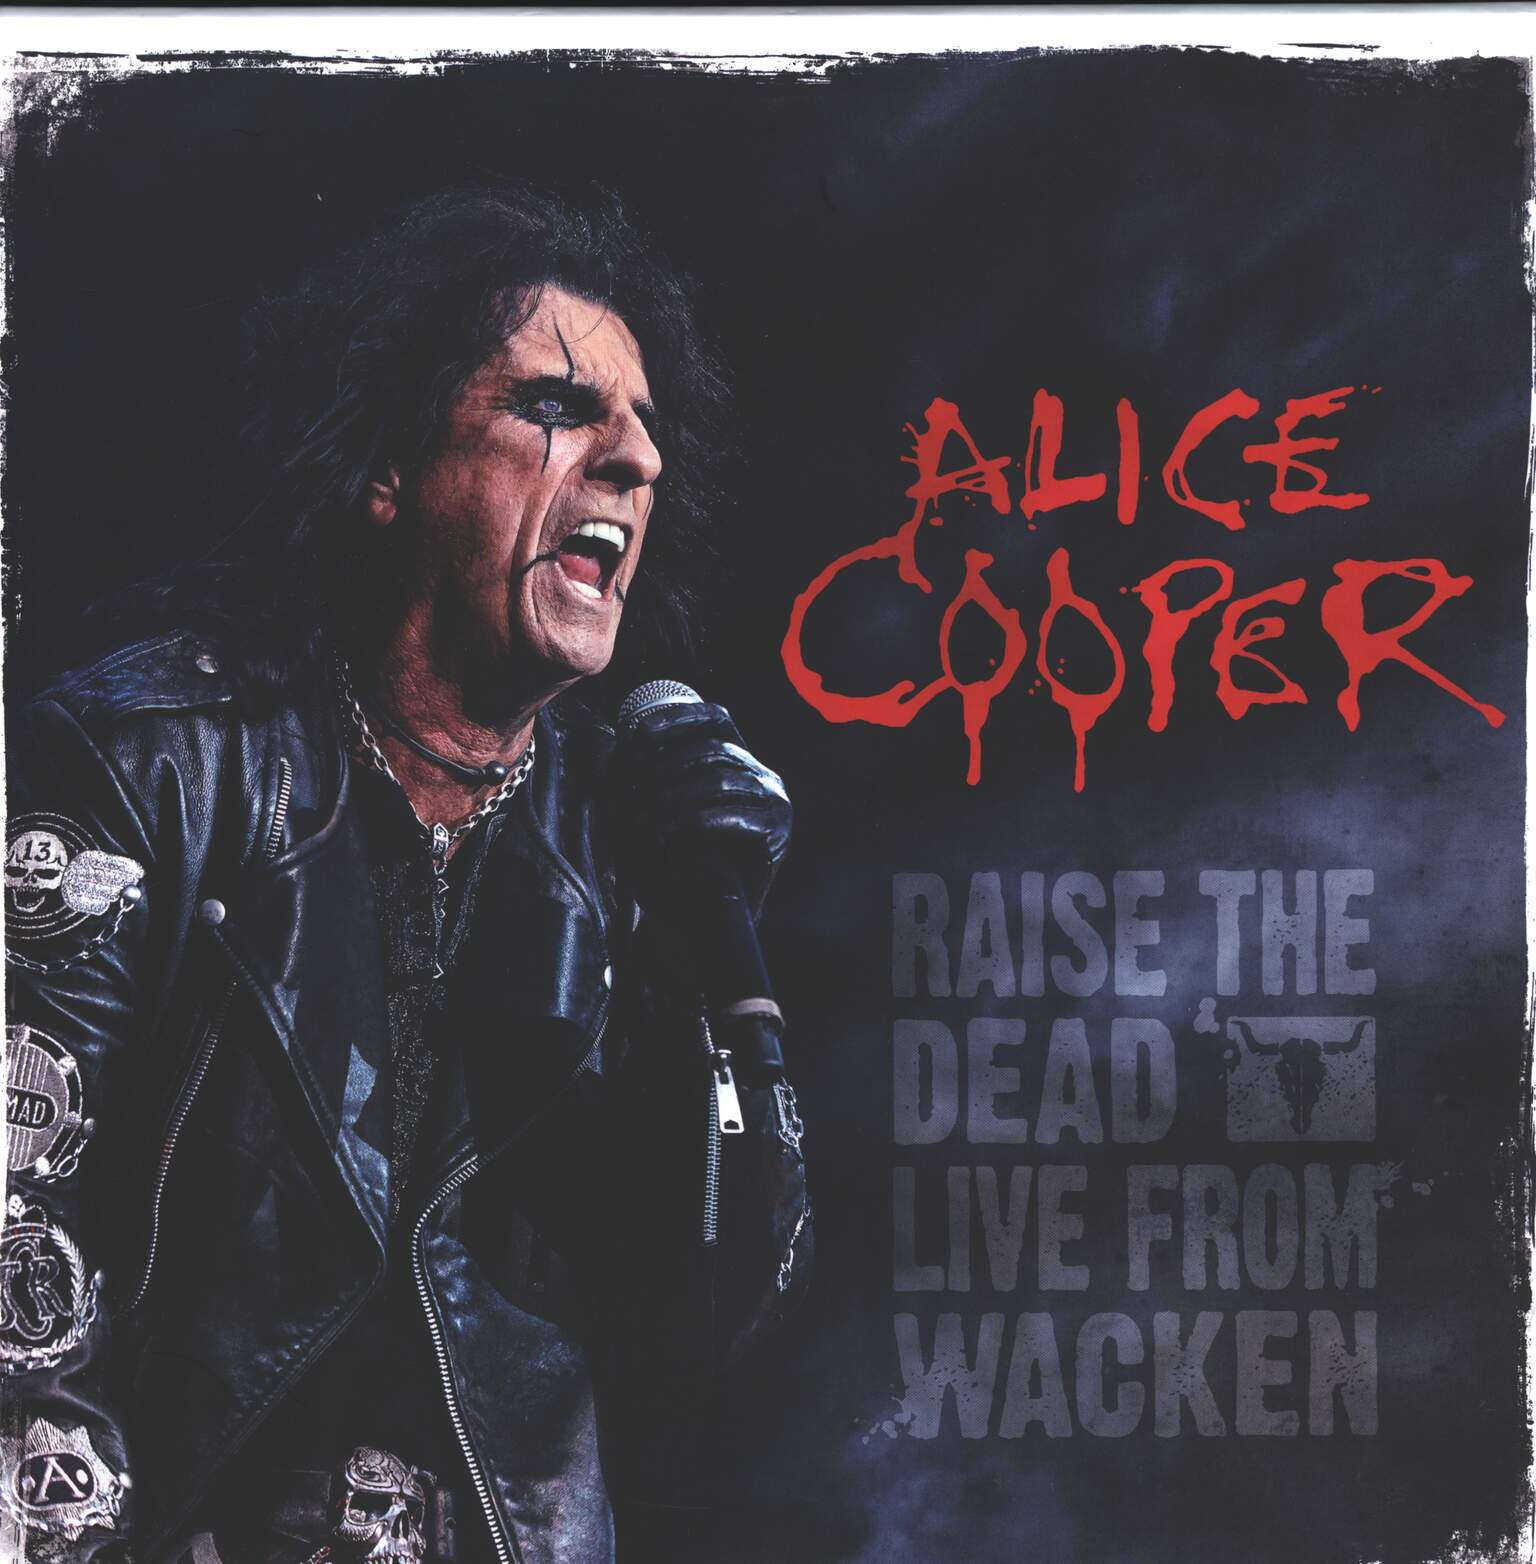 Alice Cooper: Raise The Dead - Live From Wacken, 3×LP (Vinyl), 2×CD, 1×Blu-ray Disc